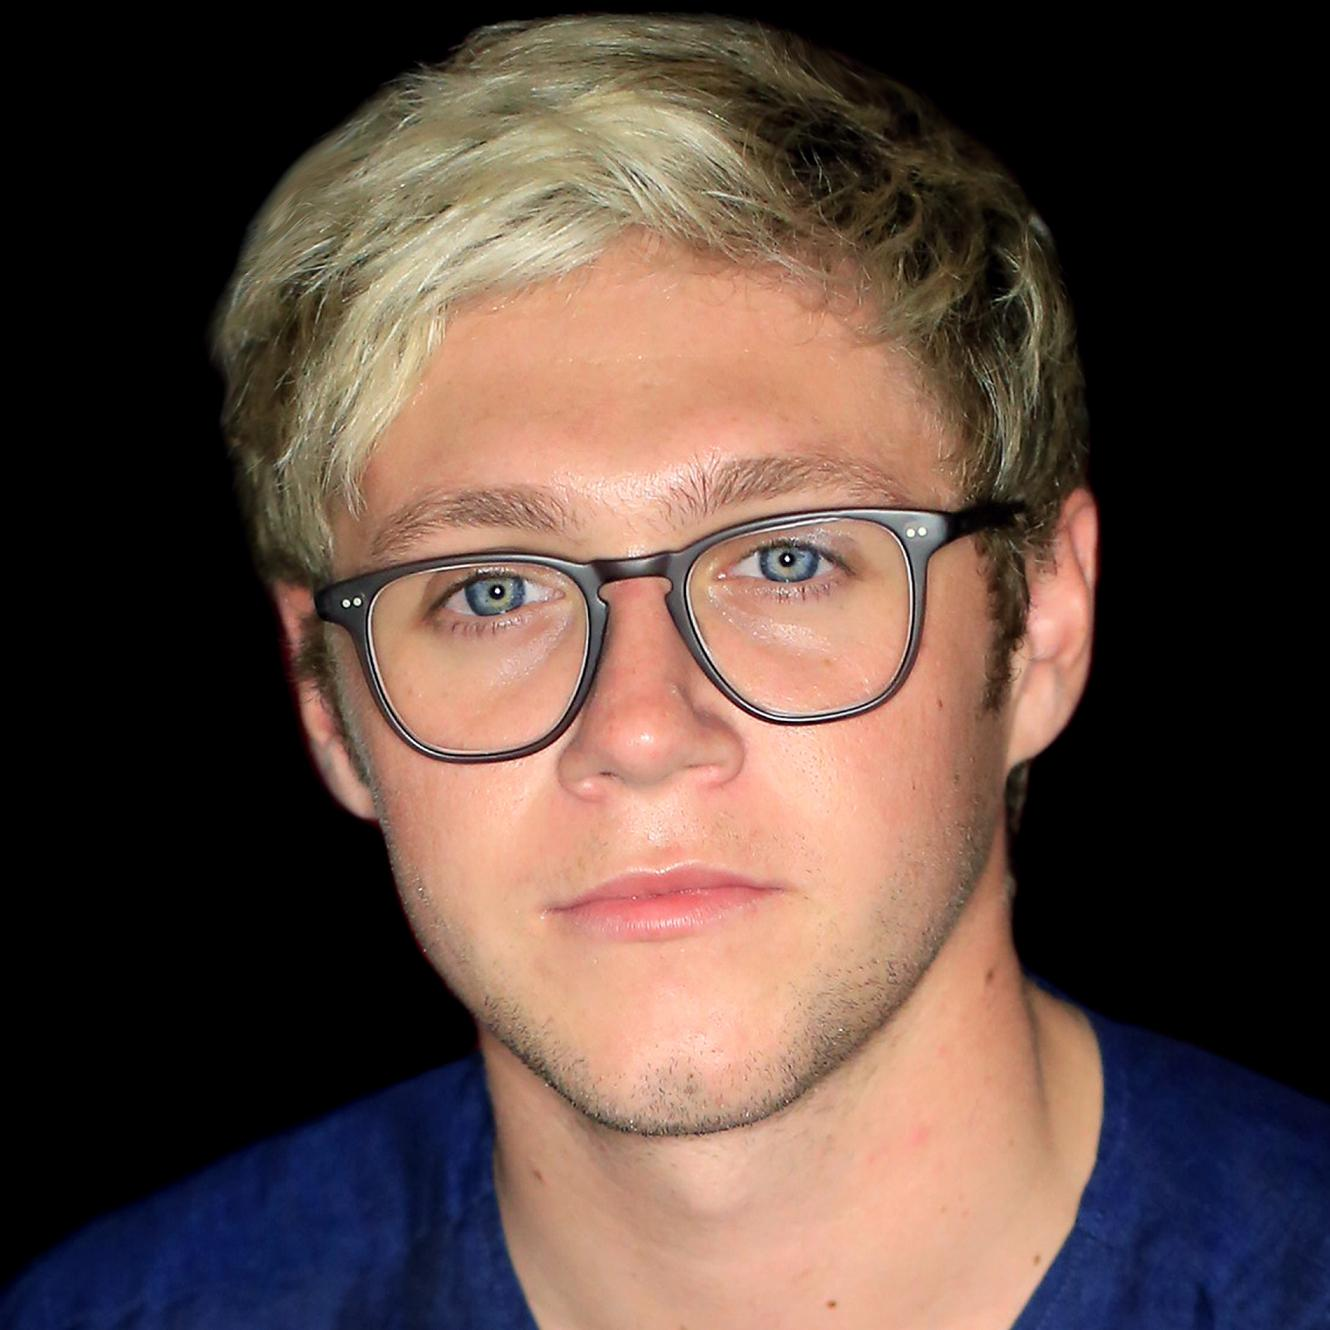 Niall Horan Bio, Net Worth, Facts